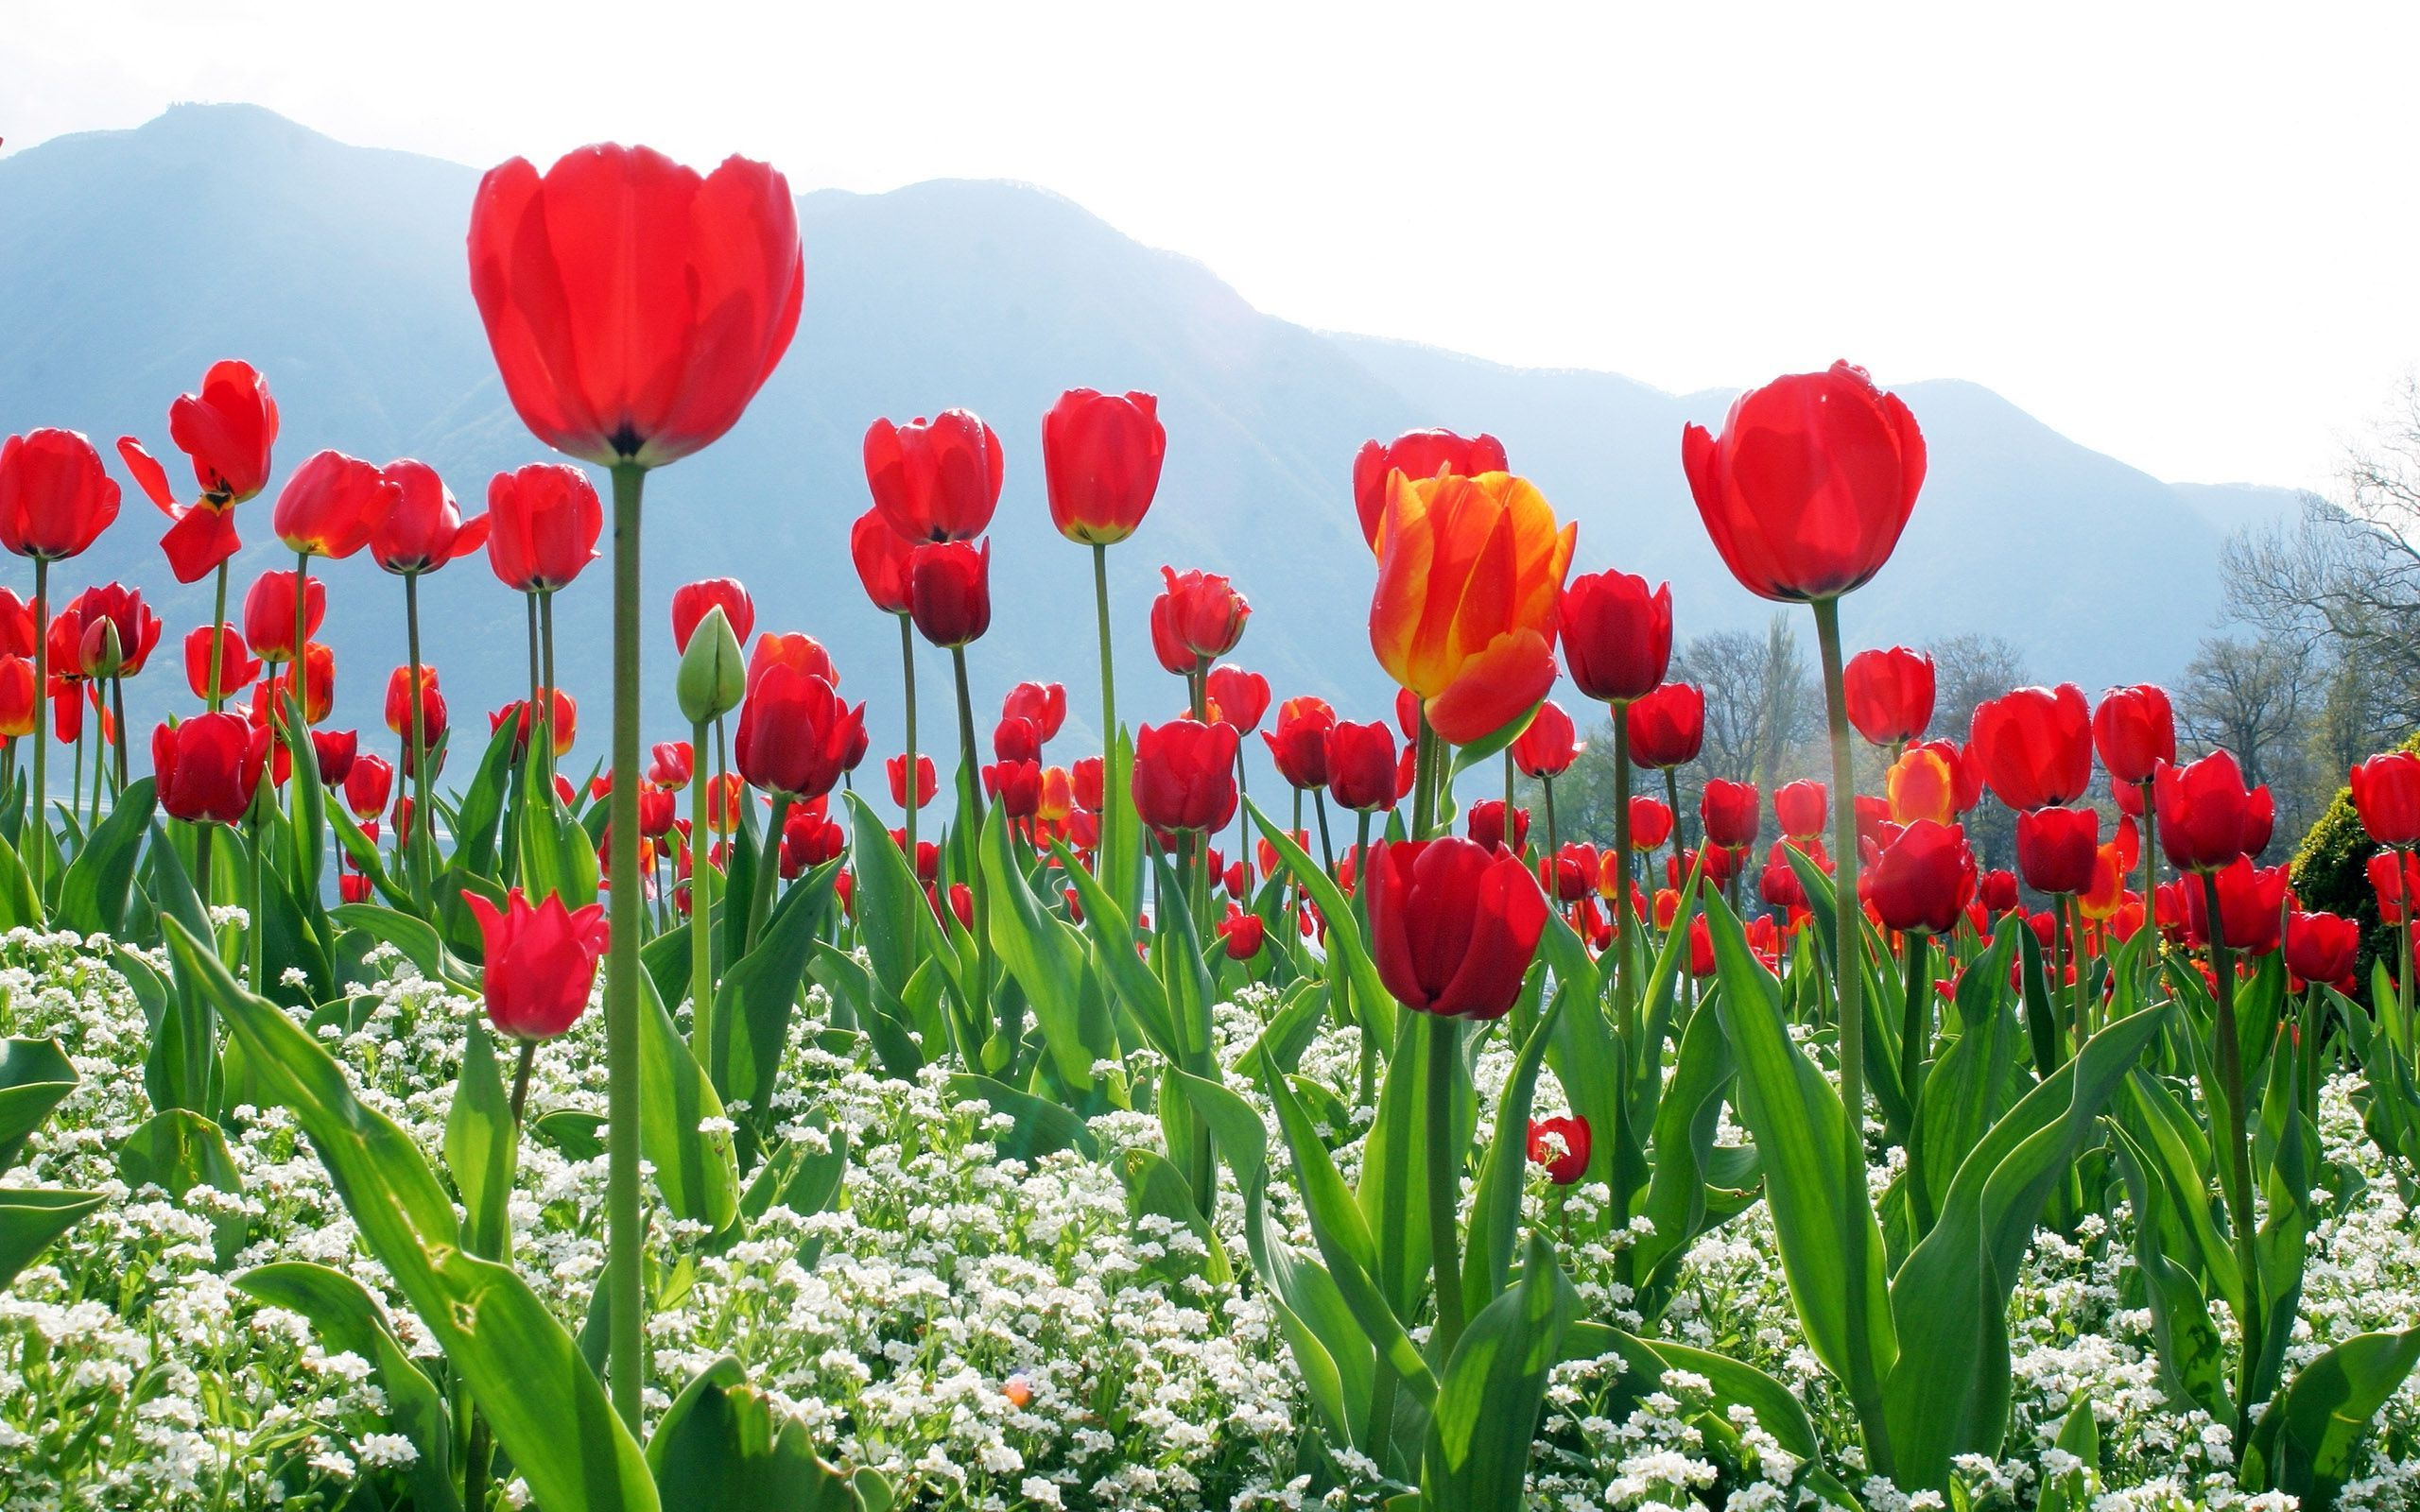 Tulips Flower Hd Images 20292 Tulips Flowers Red Tulips Flower Images